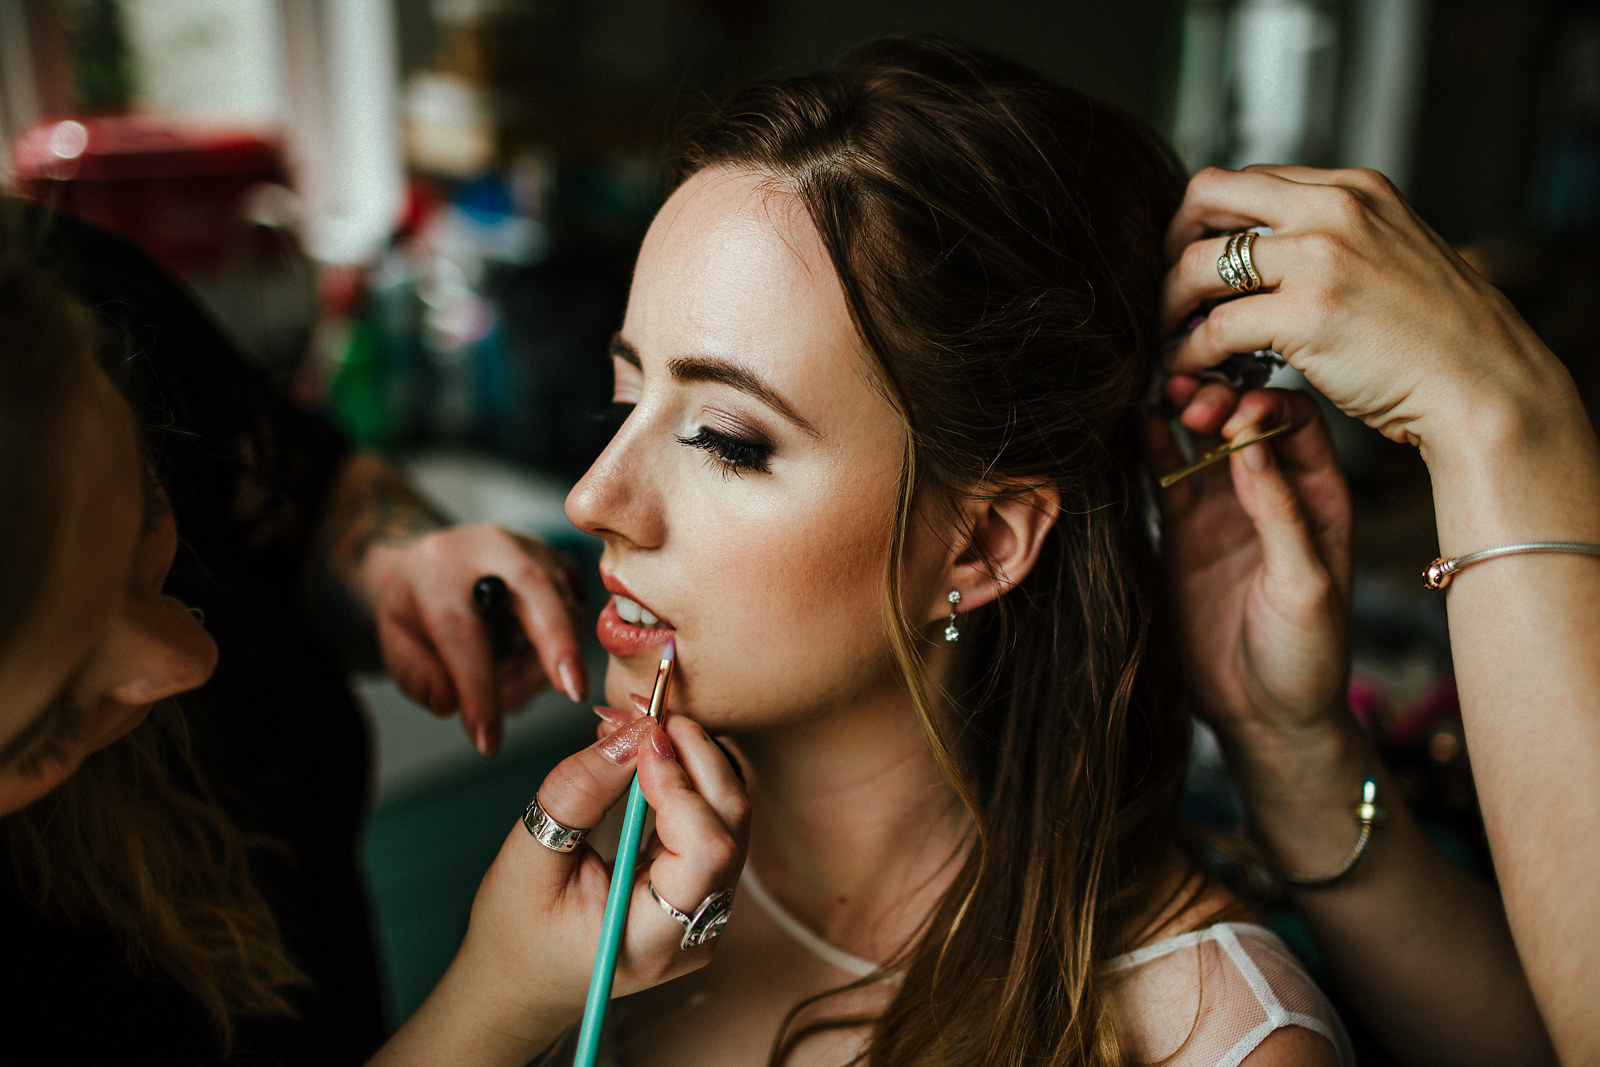 Bride getting ready for wedding day photo